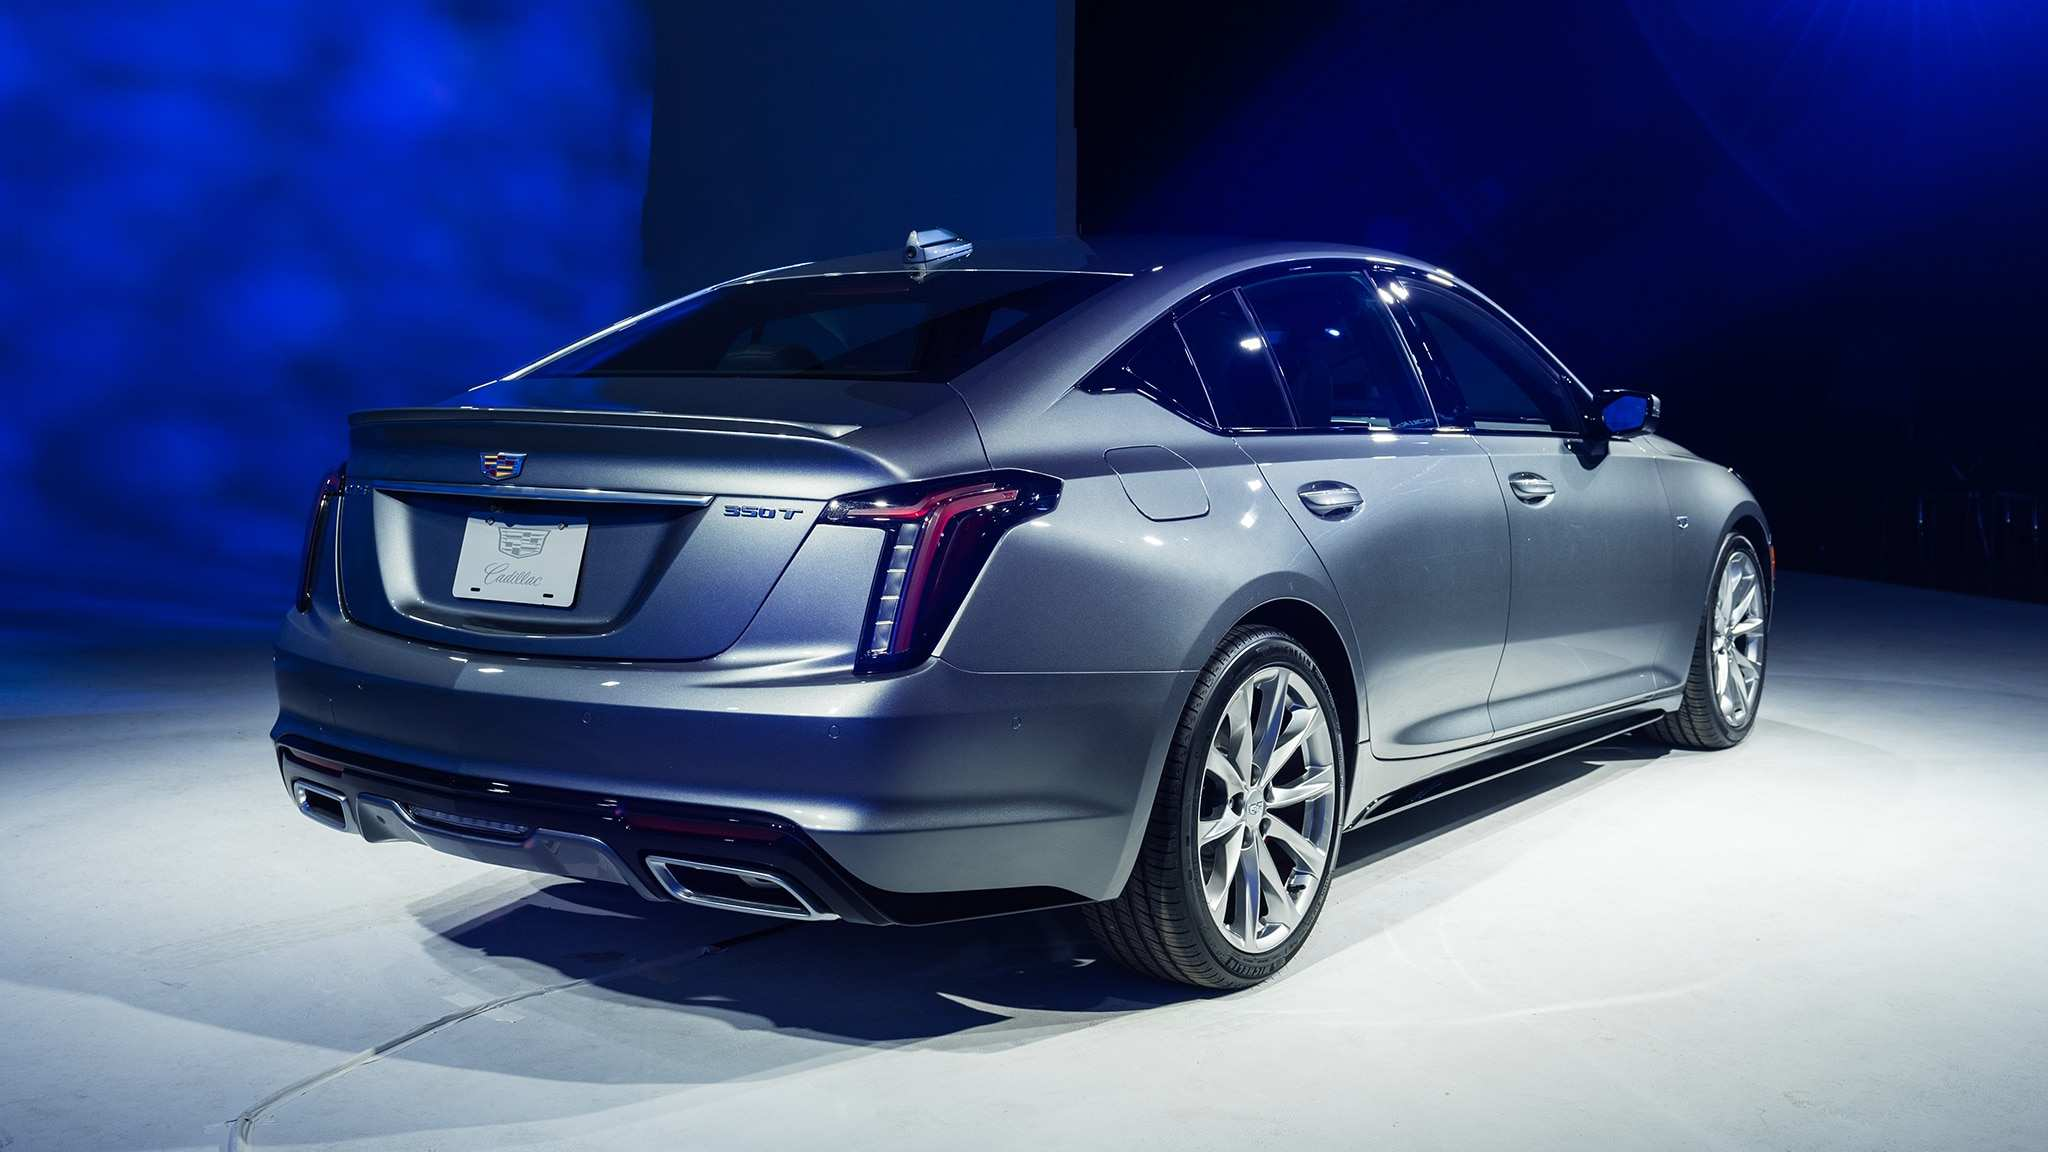 64 New Cadillac For 2020 Price and Review for Cadillac For 2020